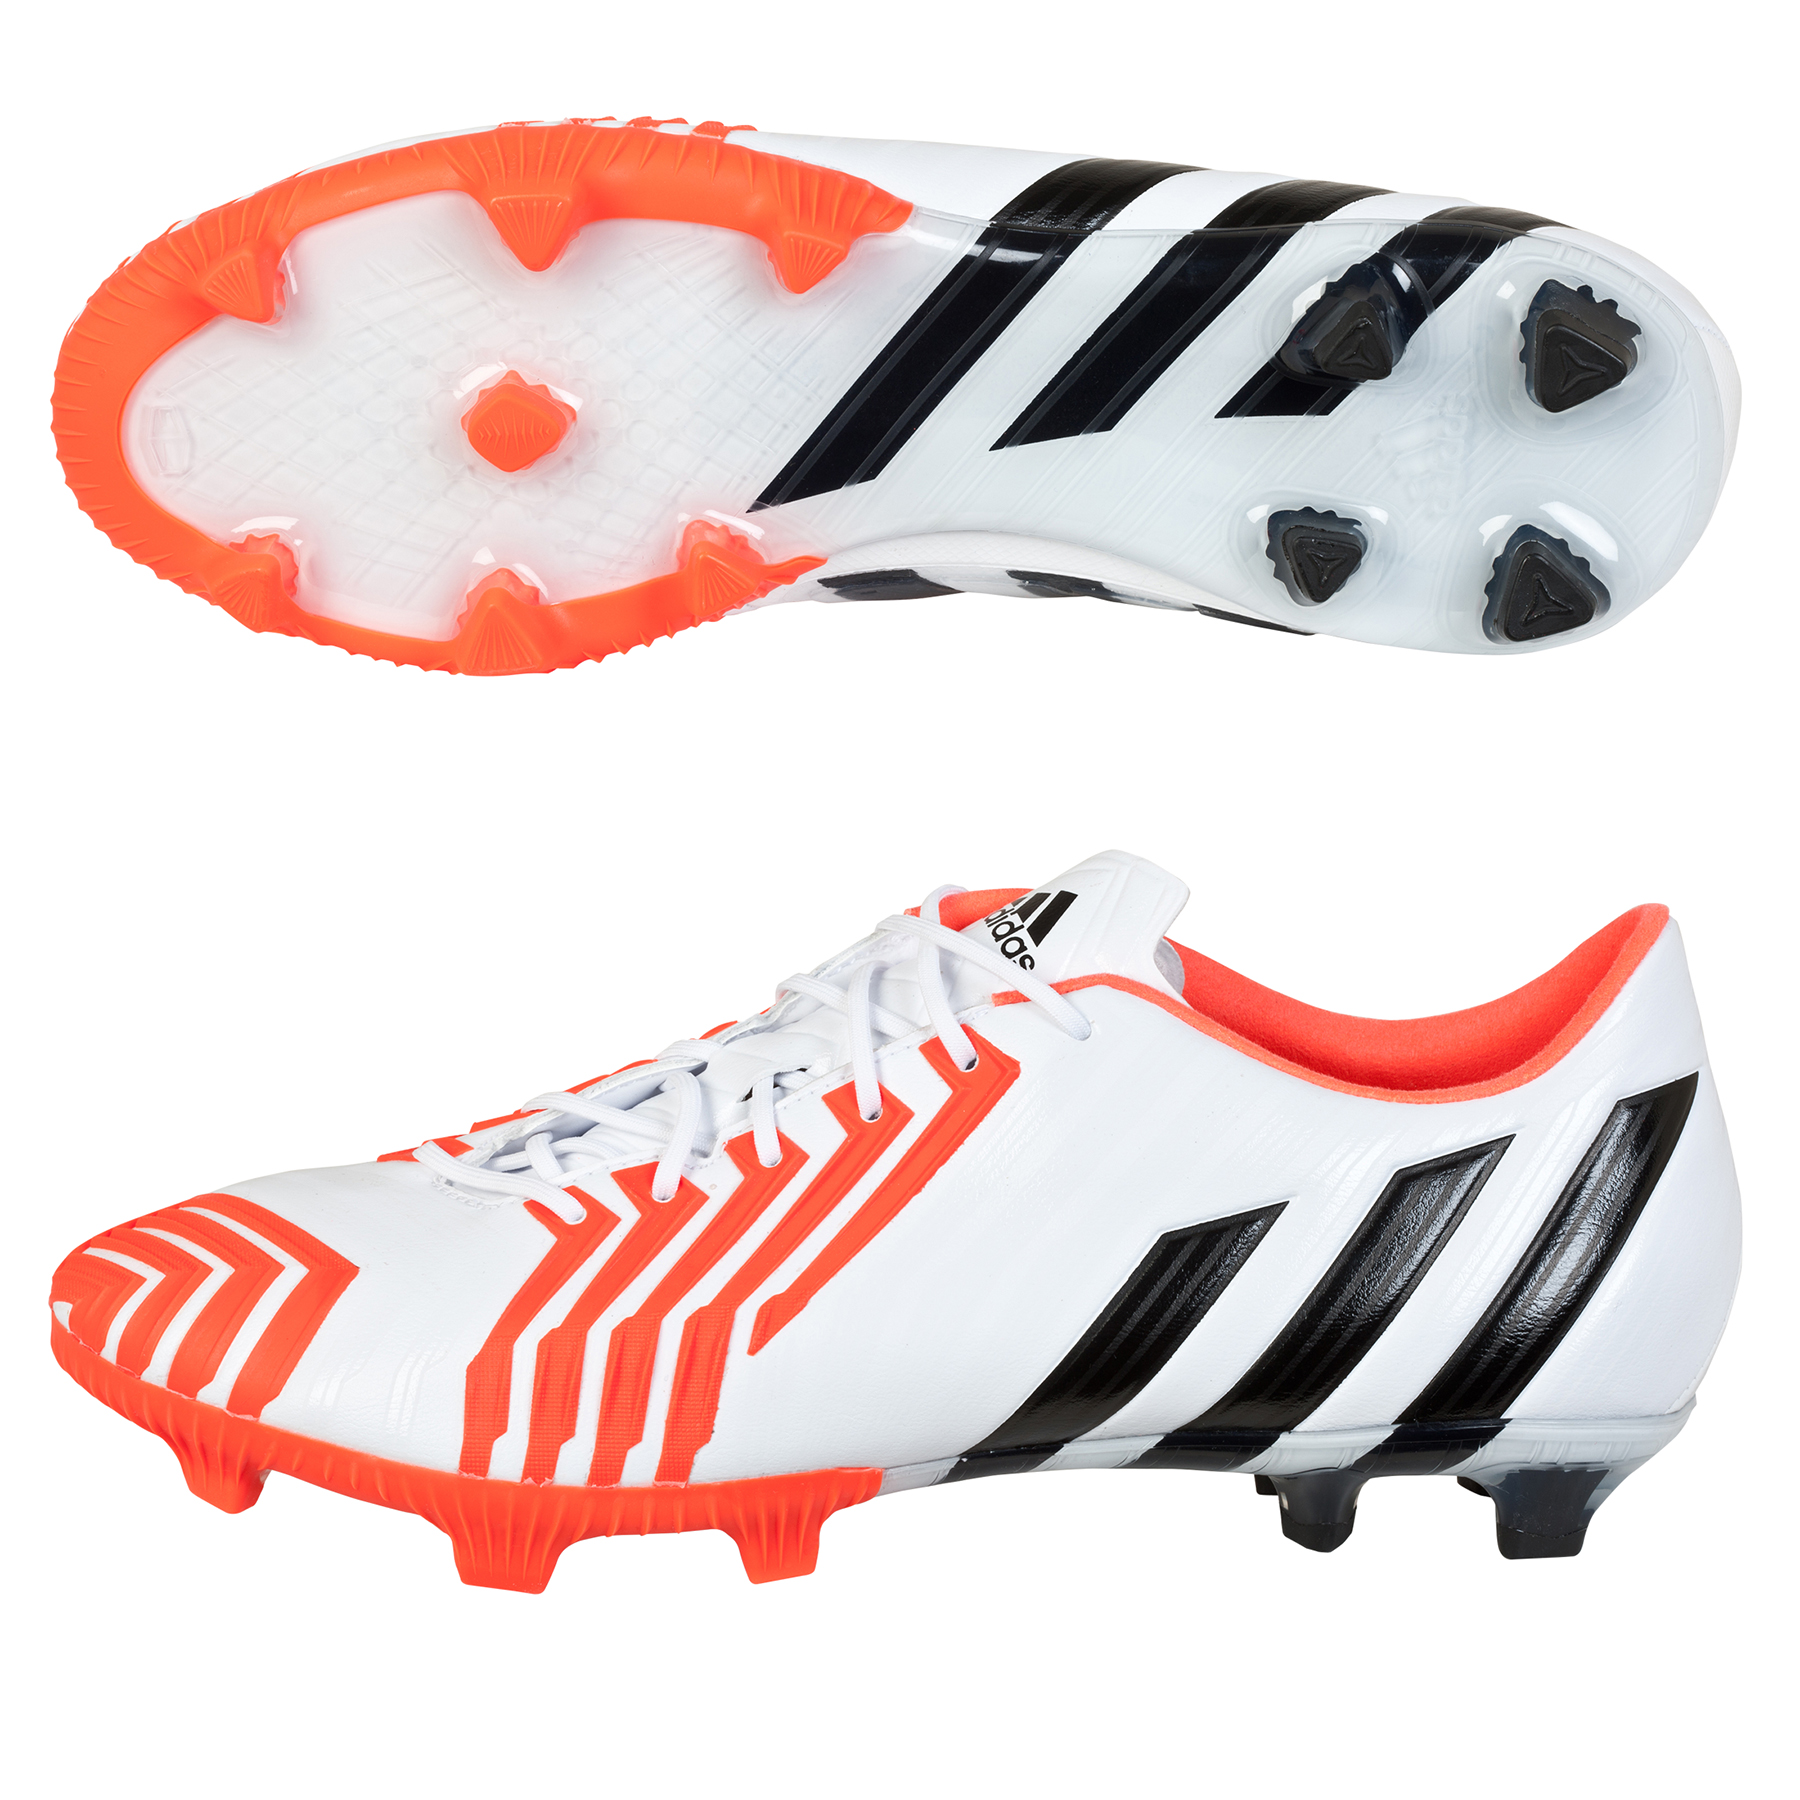 Adidas Predator Instinct Firm Ground Football Boots White